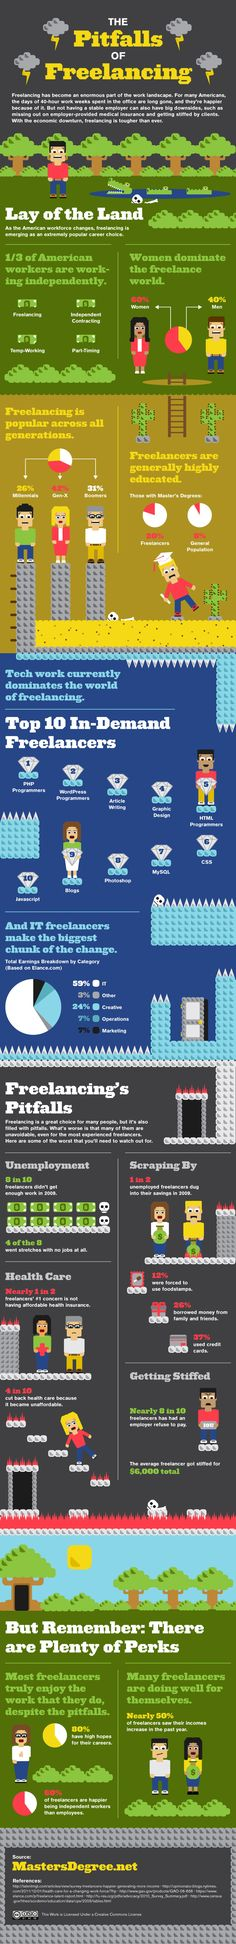 #Infográfico > The Pitfalls of Freelancing